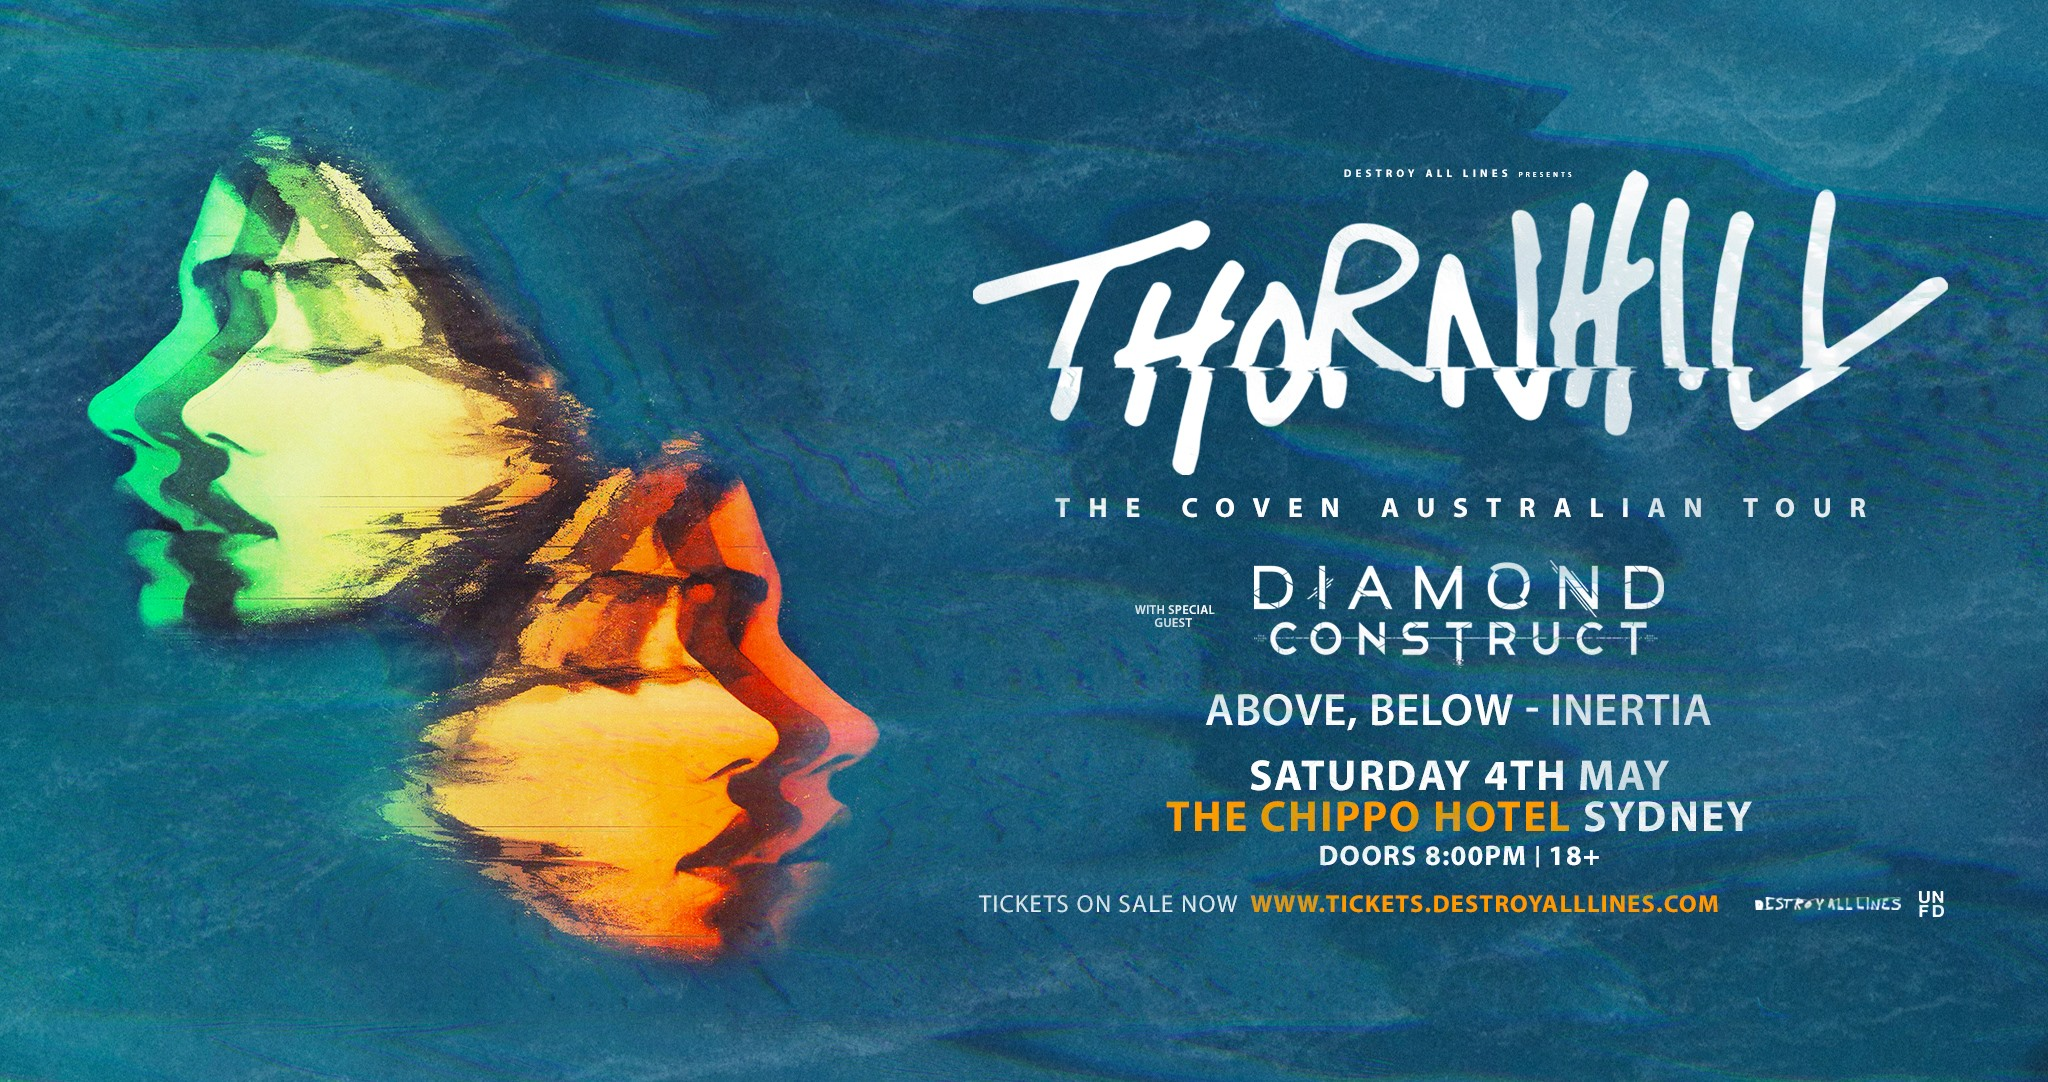 Thornhill 'Coven' Aus Tour - Sydney 18+.jpg